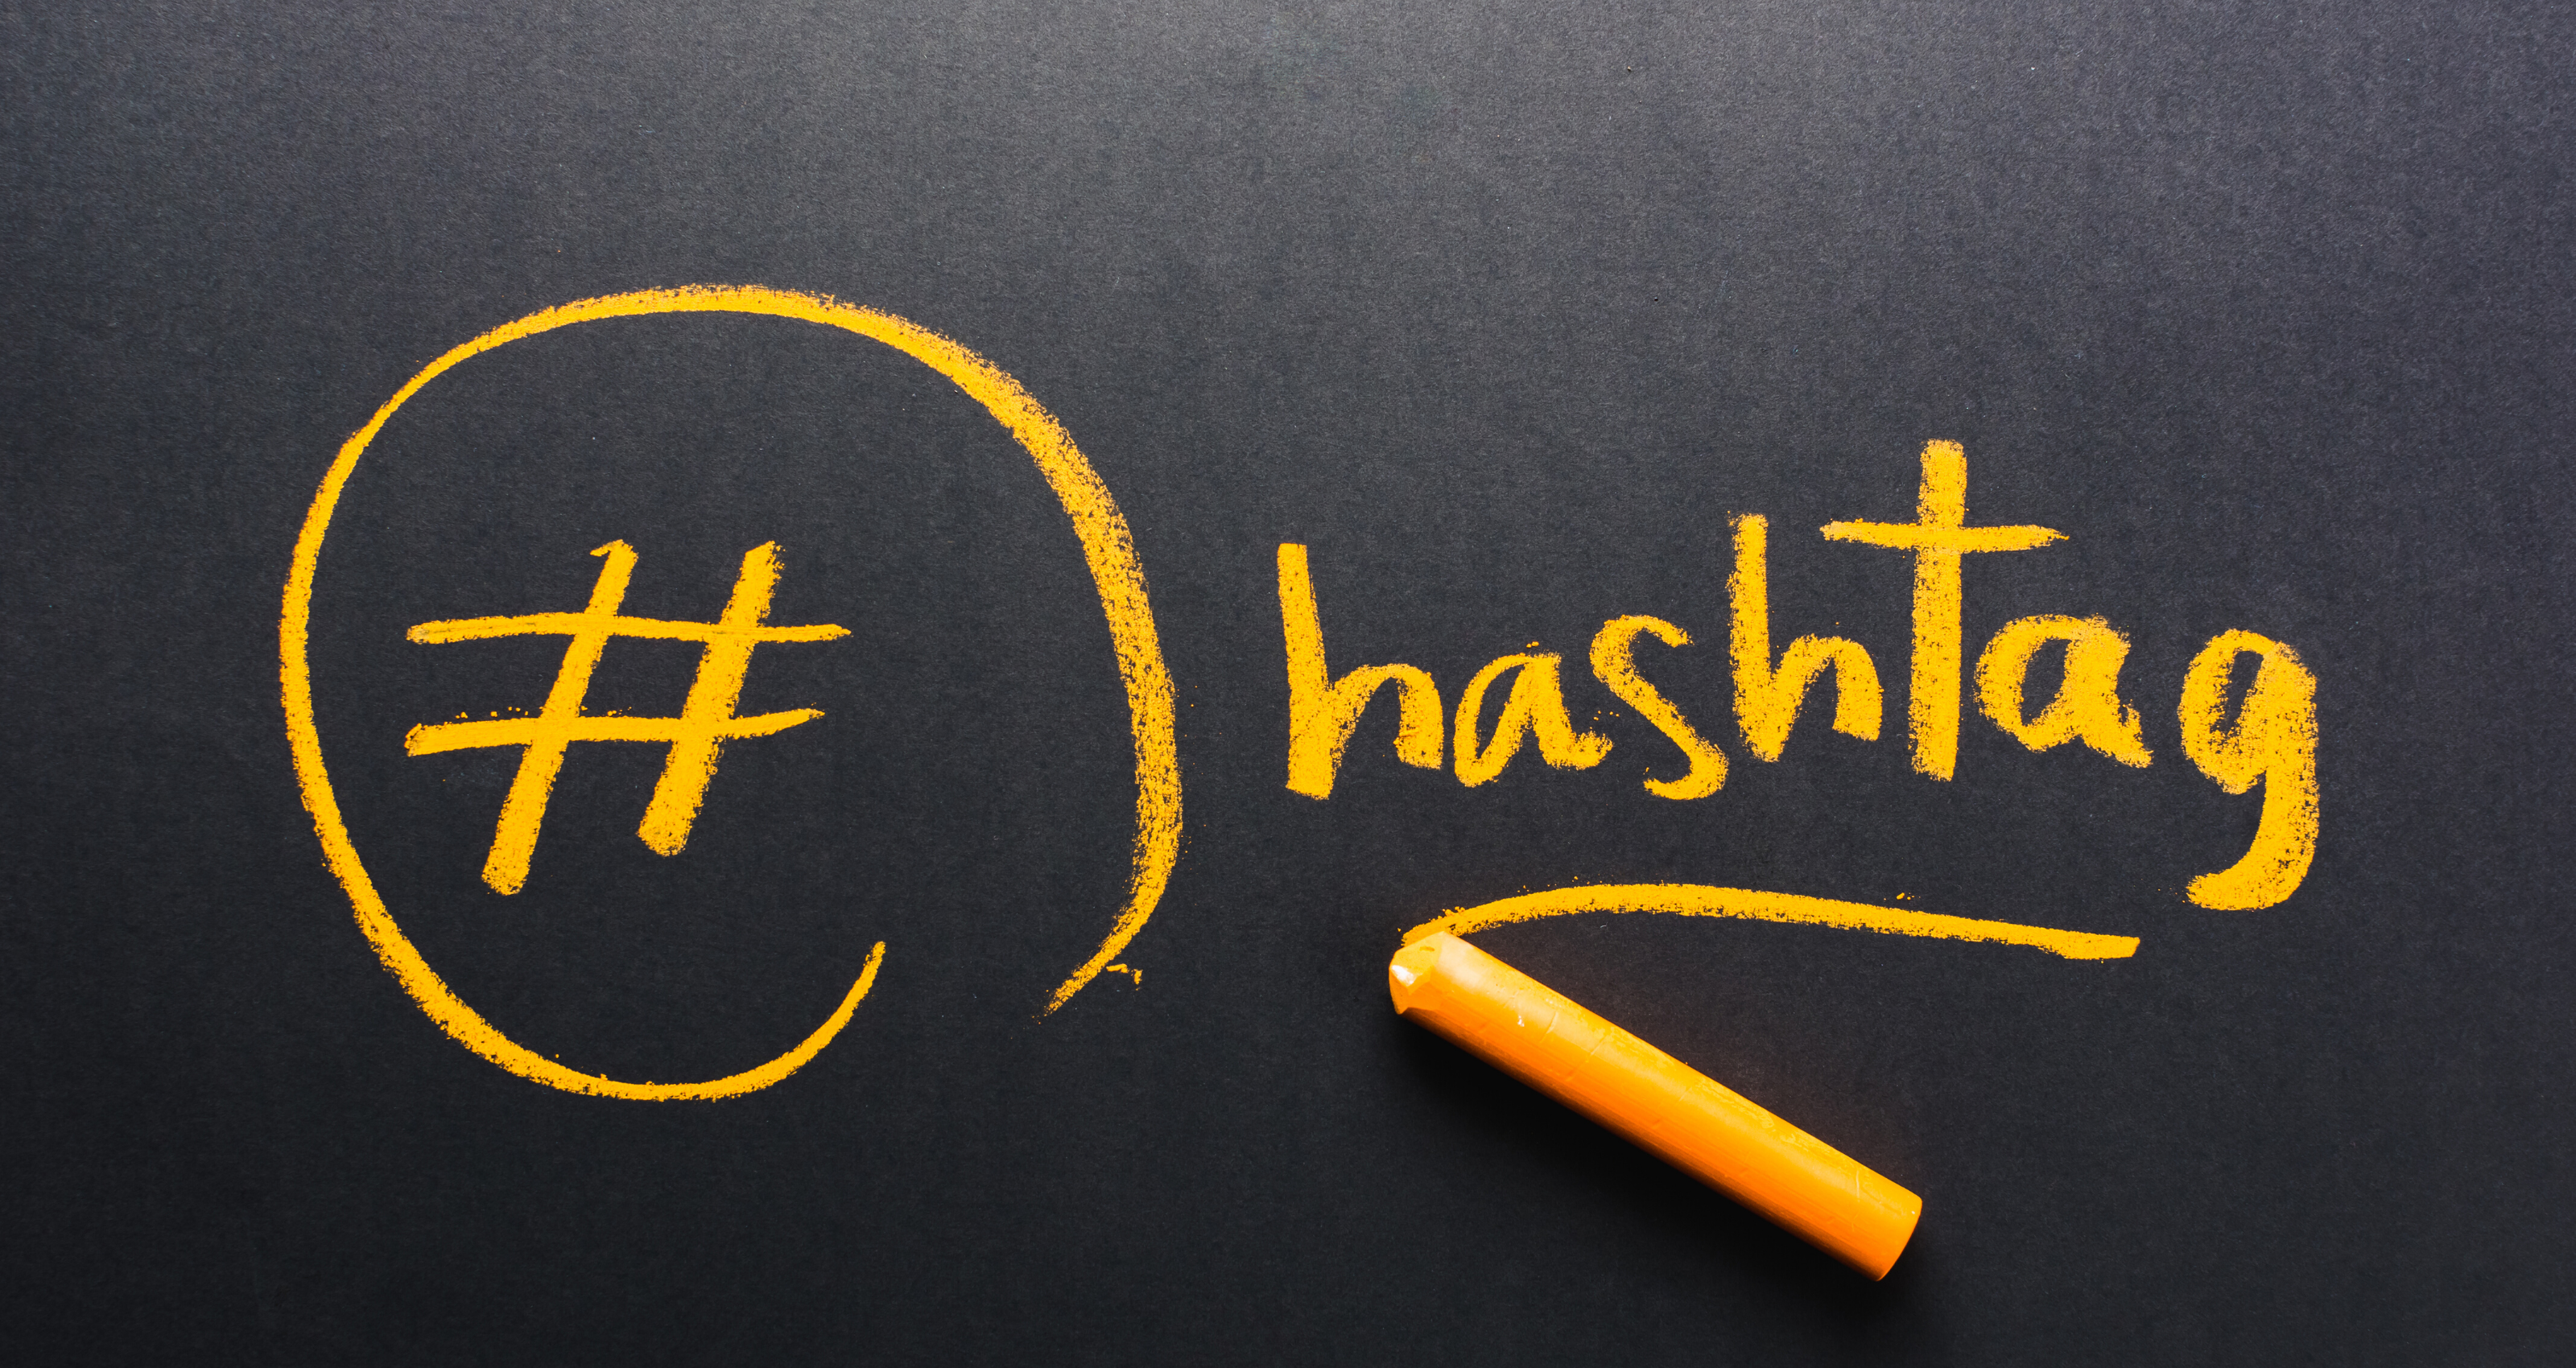 Daily Hashtags for Small Business Marketing